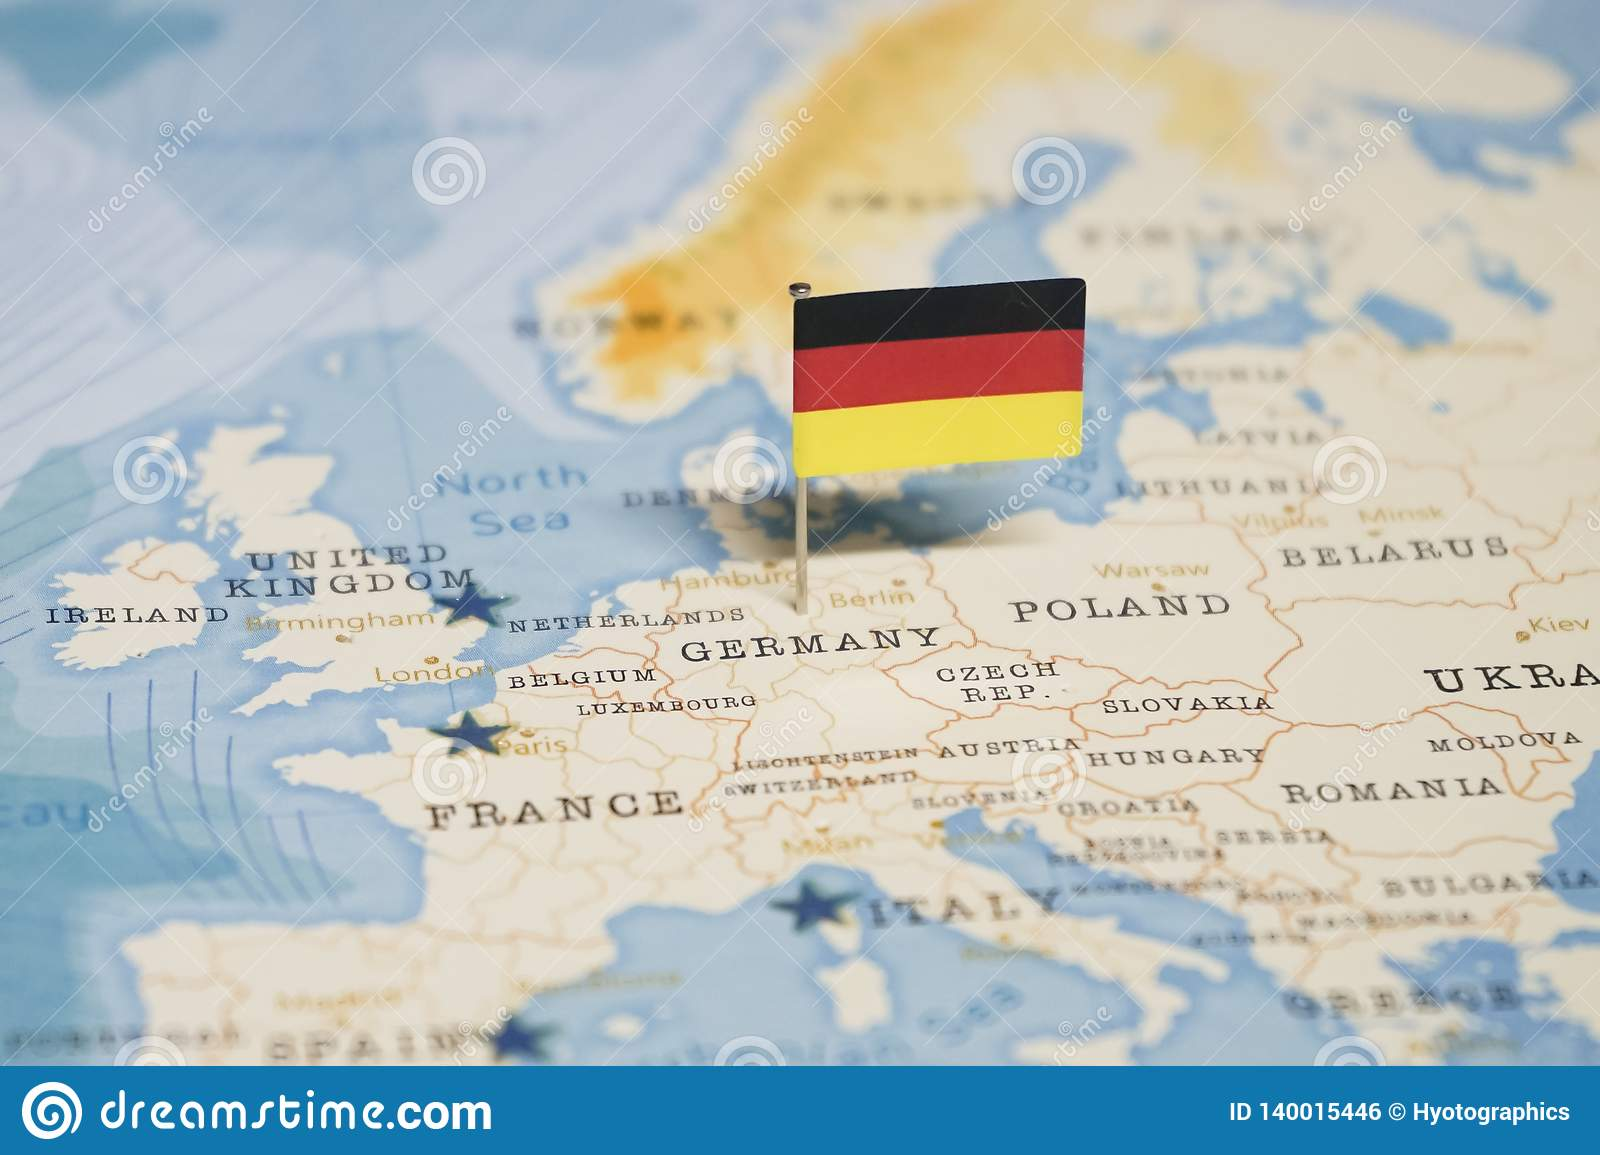 Germany On Map Of World.The Flag Of Germany In The World Map Stock Photo Image Of